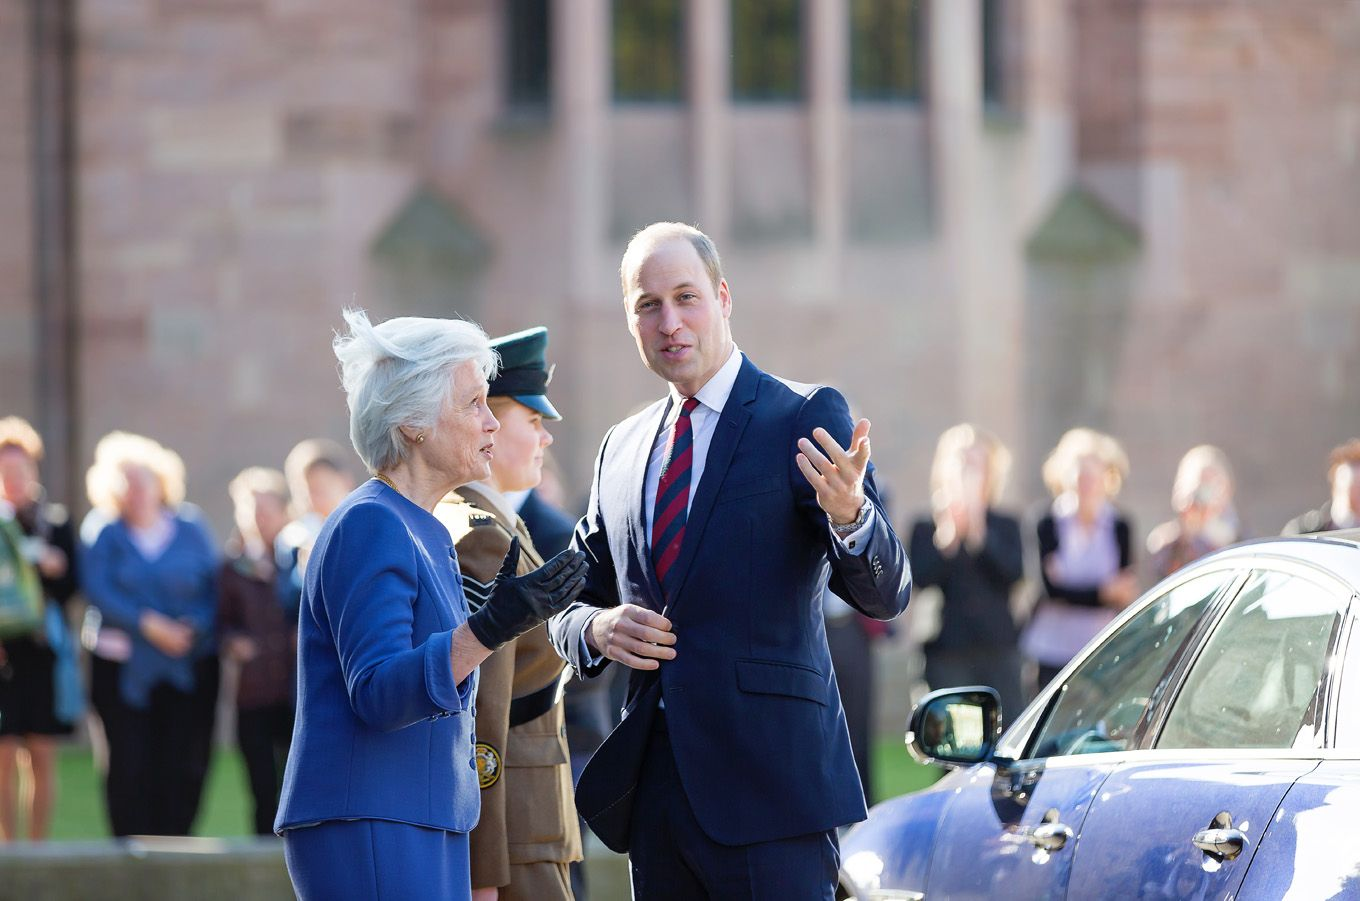 Prince William visiting Hereford